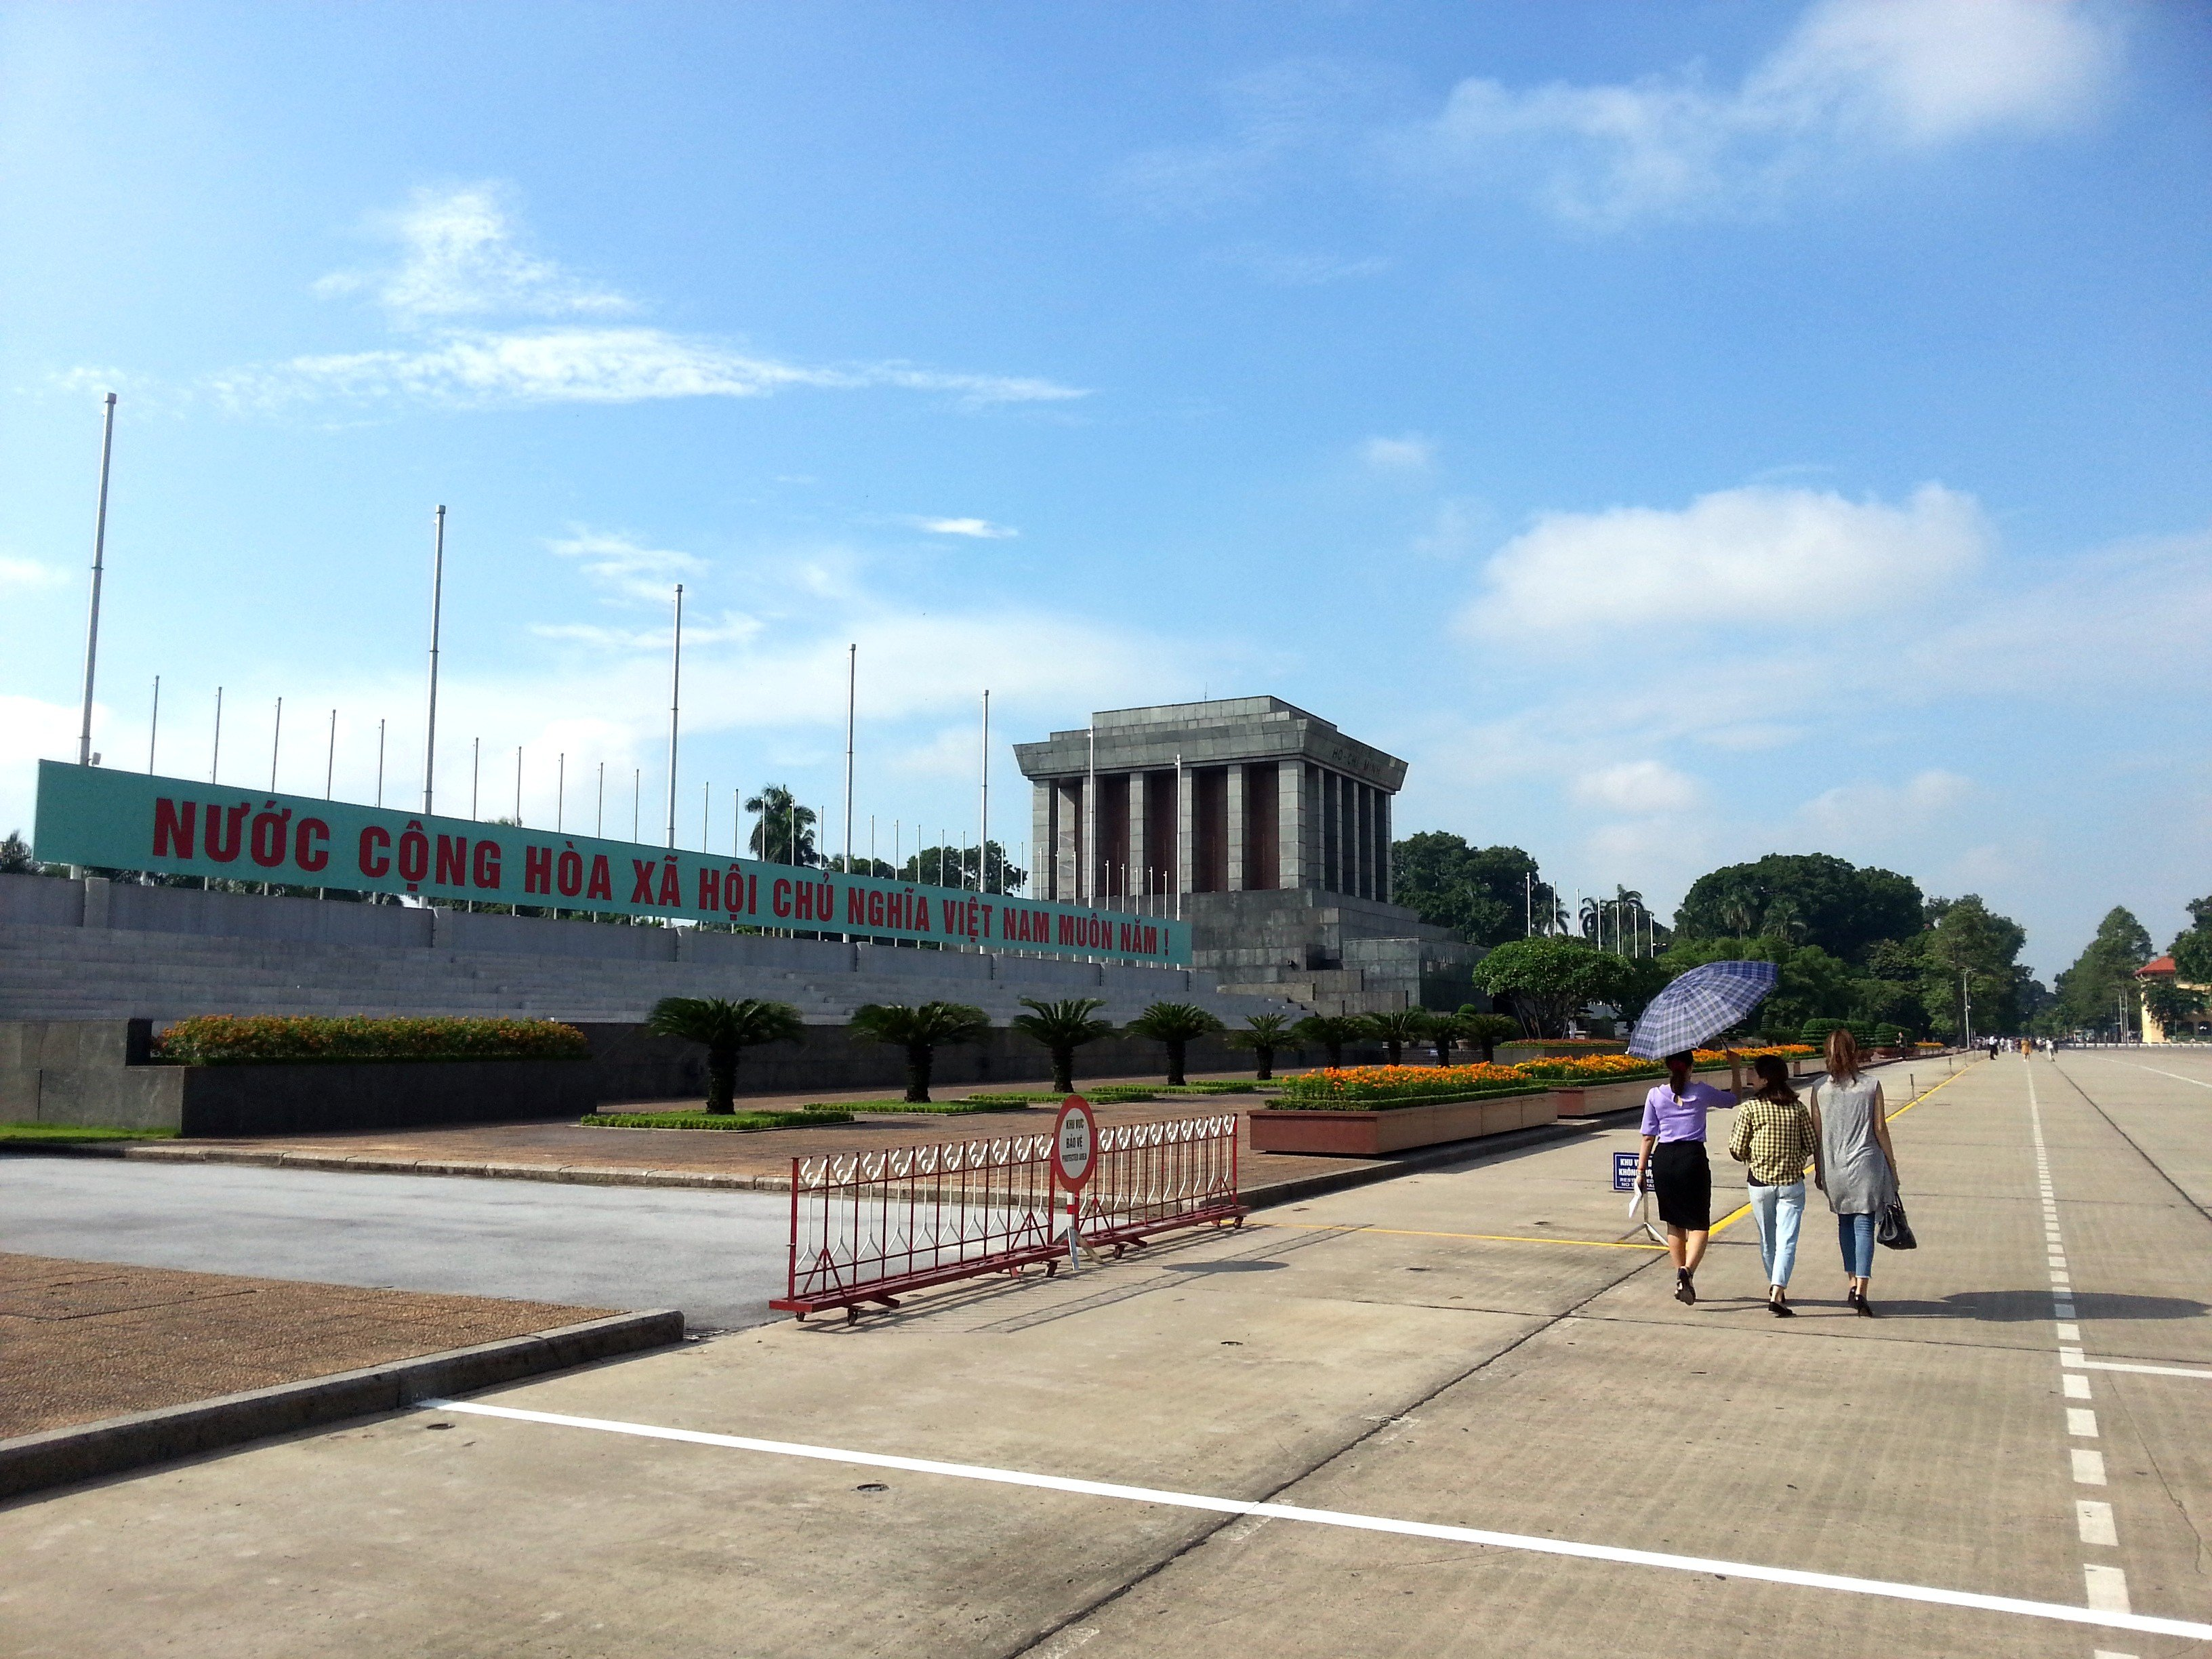 The Ho Chi Minh Mausoleum is on Ba Dinh Square